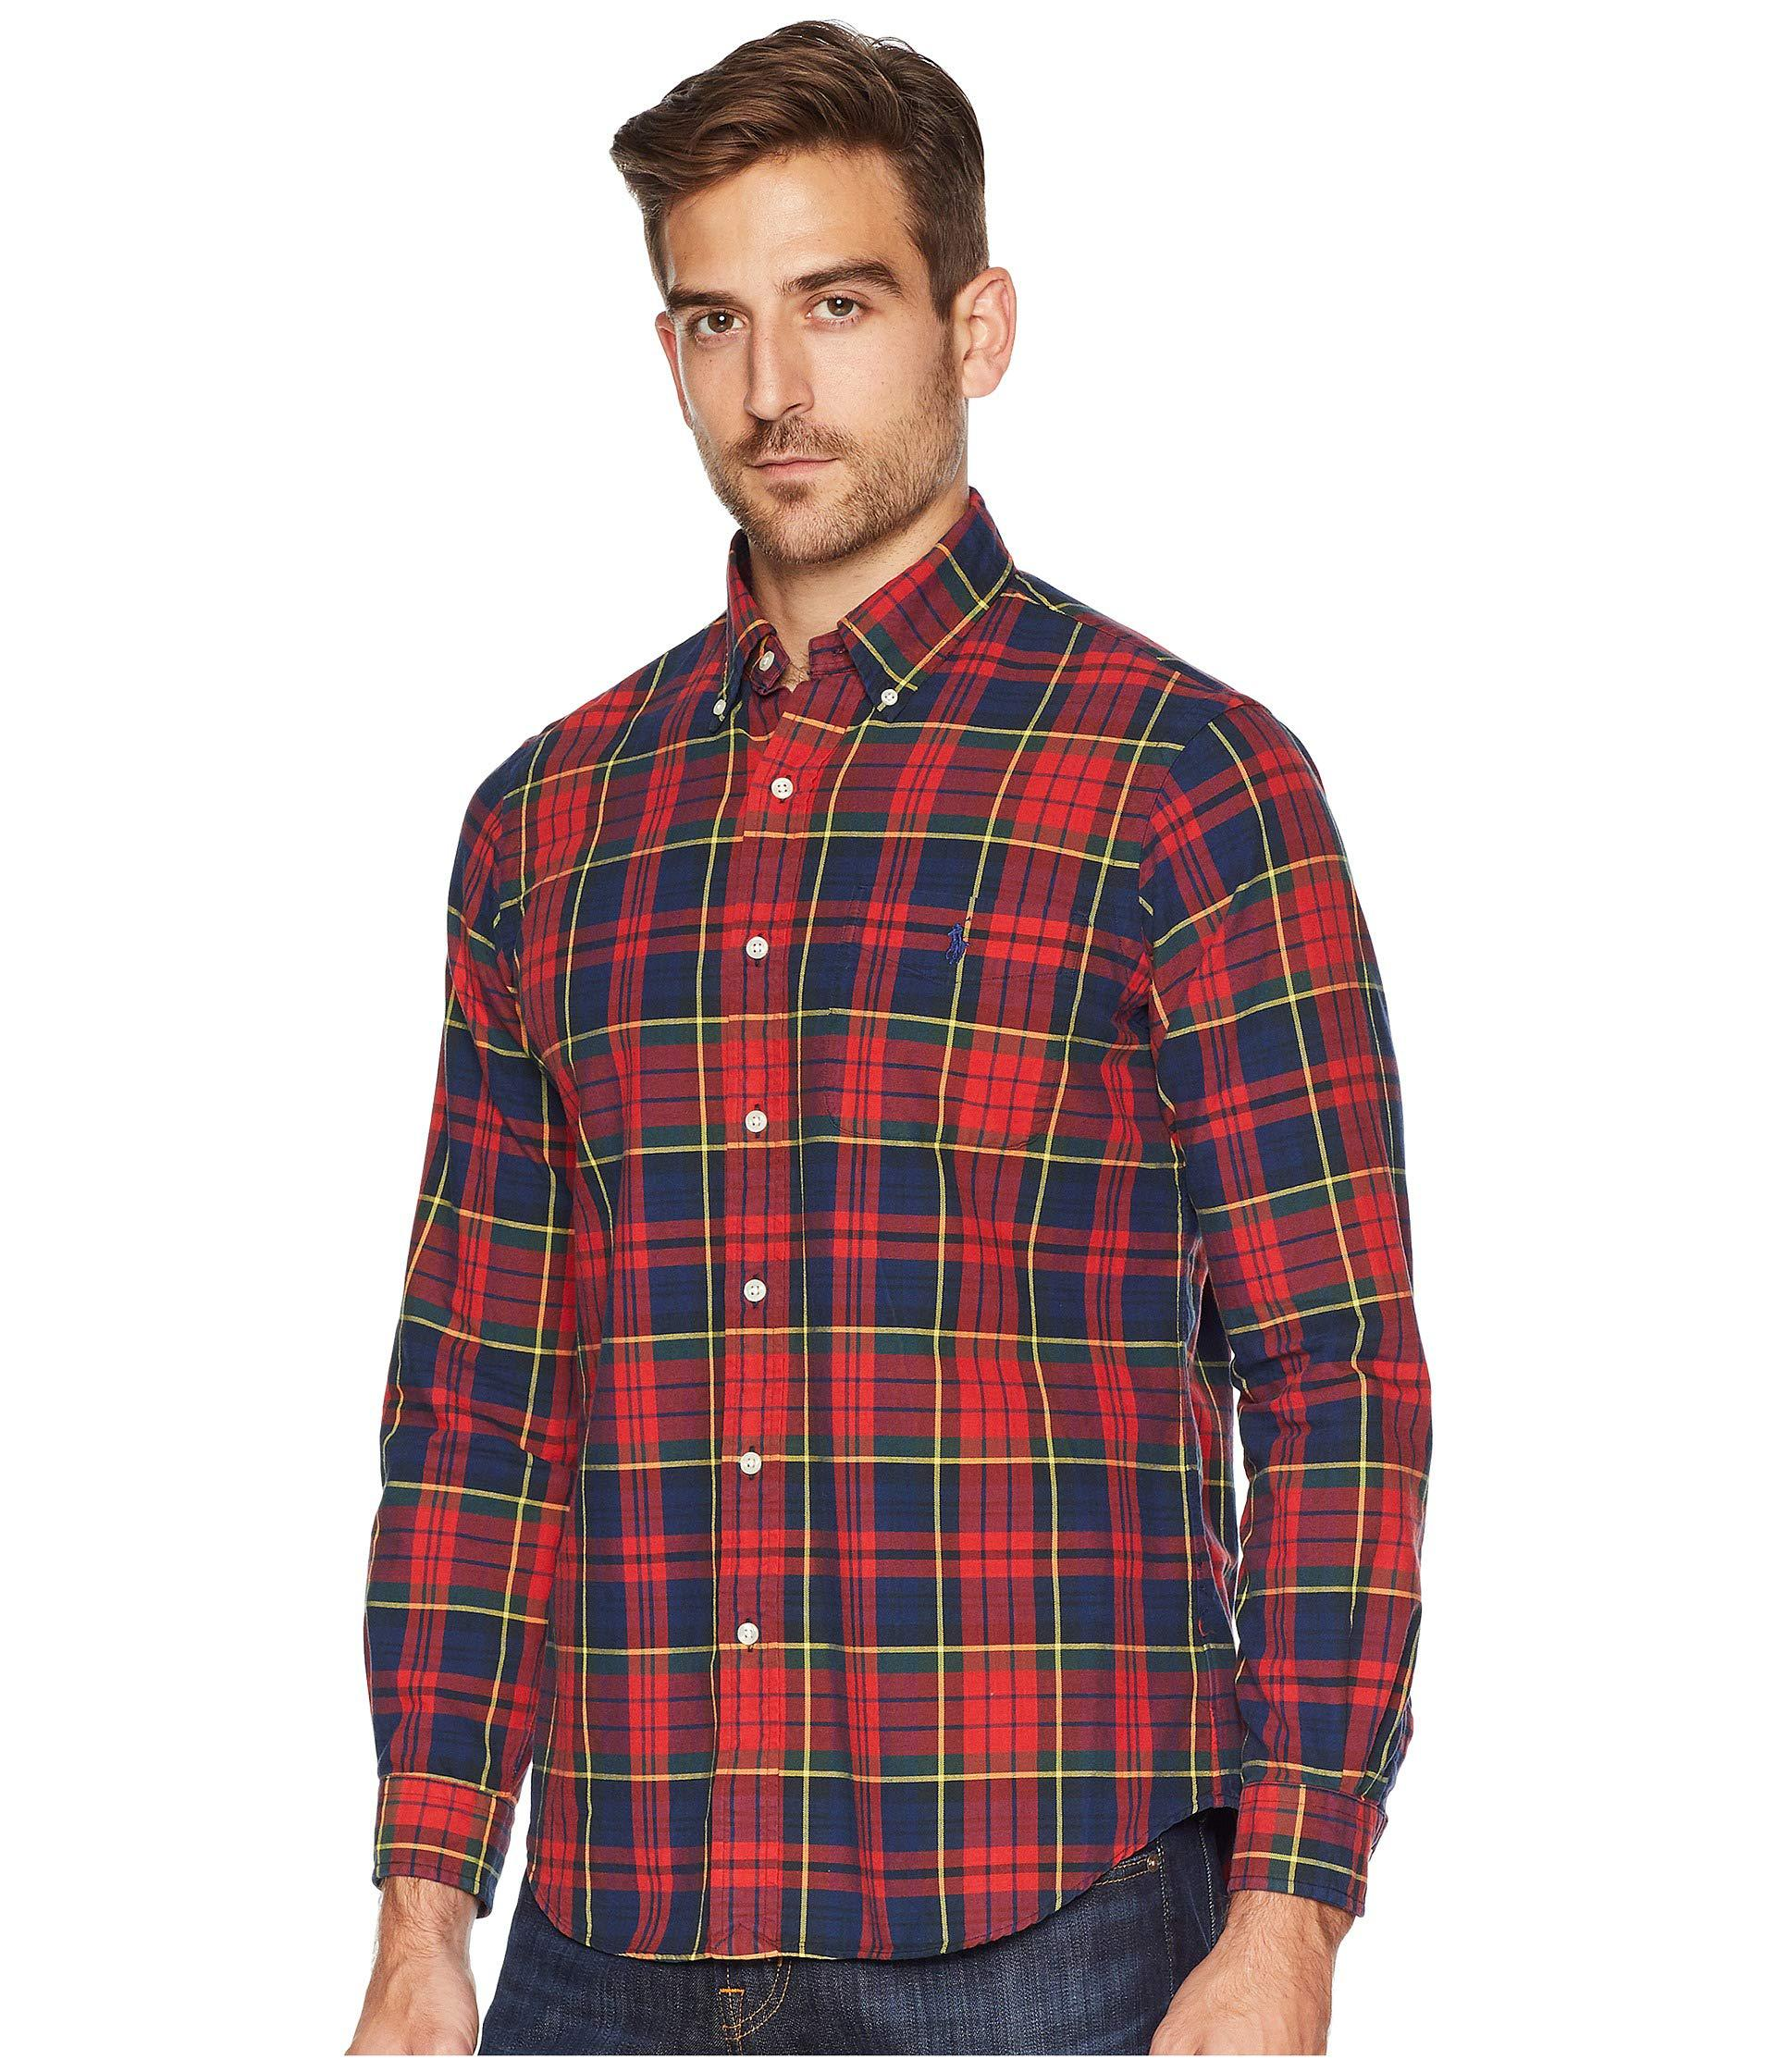 a45917451672 Lyst - Polo Ralph Lauren Classic Fit Oxford Tartan (woodland red Multi) Men s  Clothing in Red for Men